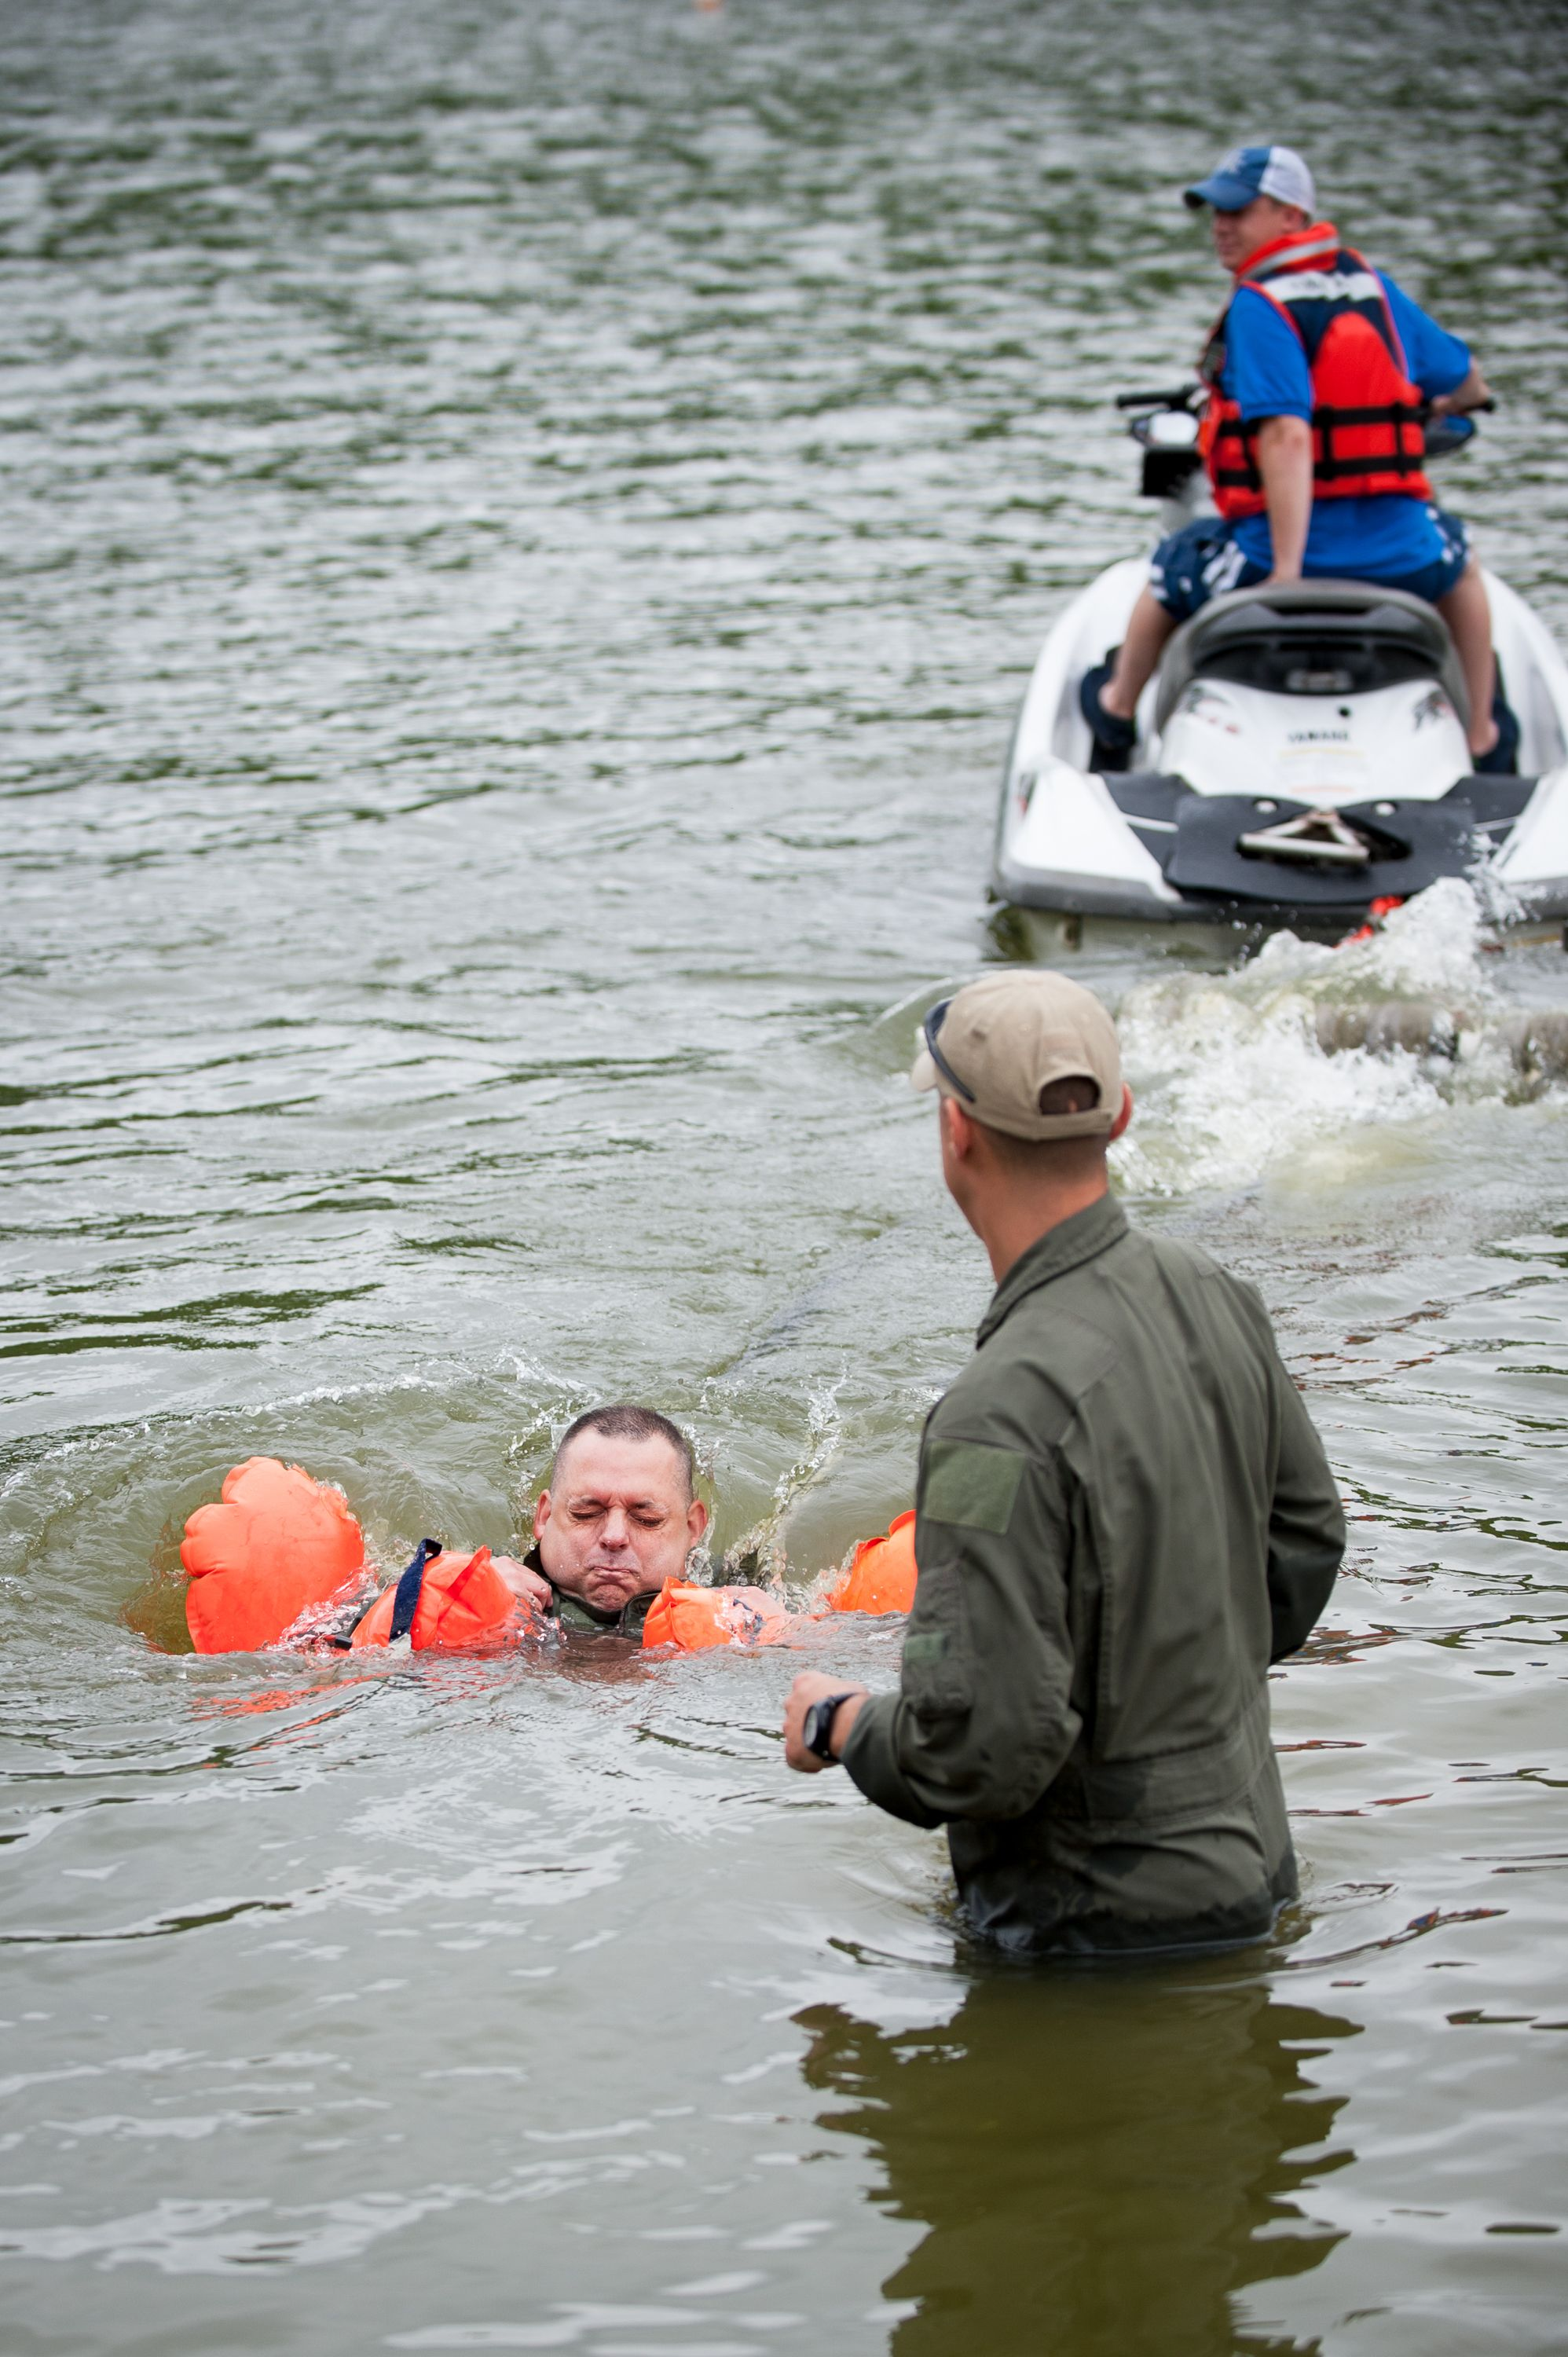 Maj. Todd Franks, a pilot in the Kentucky Air National Guard's 165th Airlift Squadron, is pulled across Taylorsville Lake in Taylorsville, Ky., by a personal watercraft June 5, 2014, as part of routine survival training. The exercise is designed to simulate what could happen to aircrew members who've parachuted into water when the wind catches their open chutes and drags them across the surface, posing the risk of drowning. (U.S. Air National Guard photo by Maj. Dale Greer)